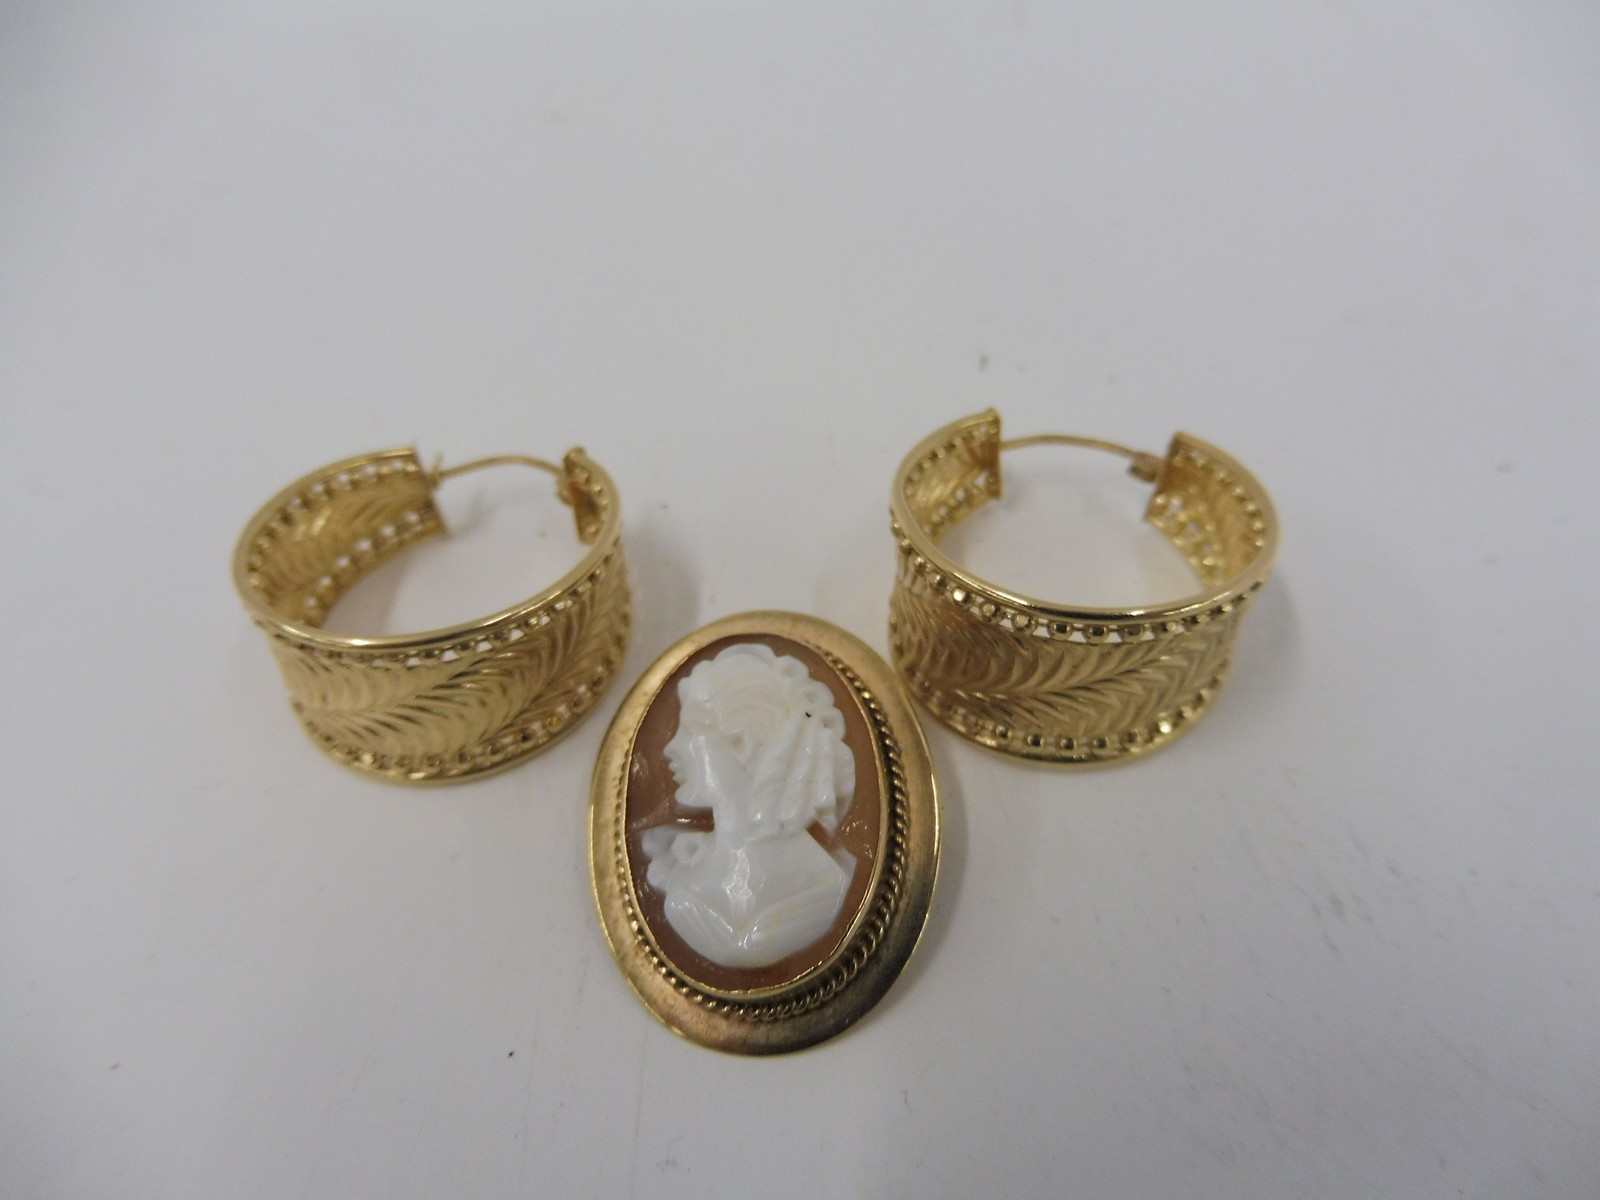 Lot 8 - A pair of 9ct gold hooped earrings and a 9ct gold mounted cameo brooch.